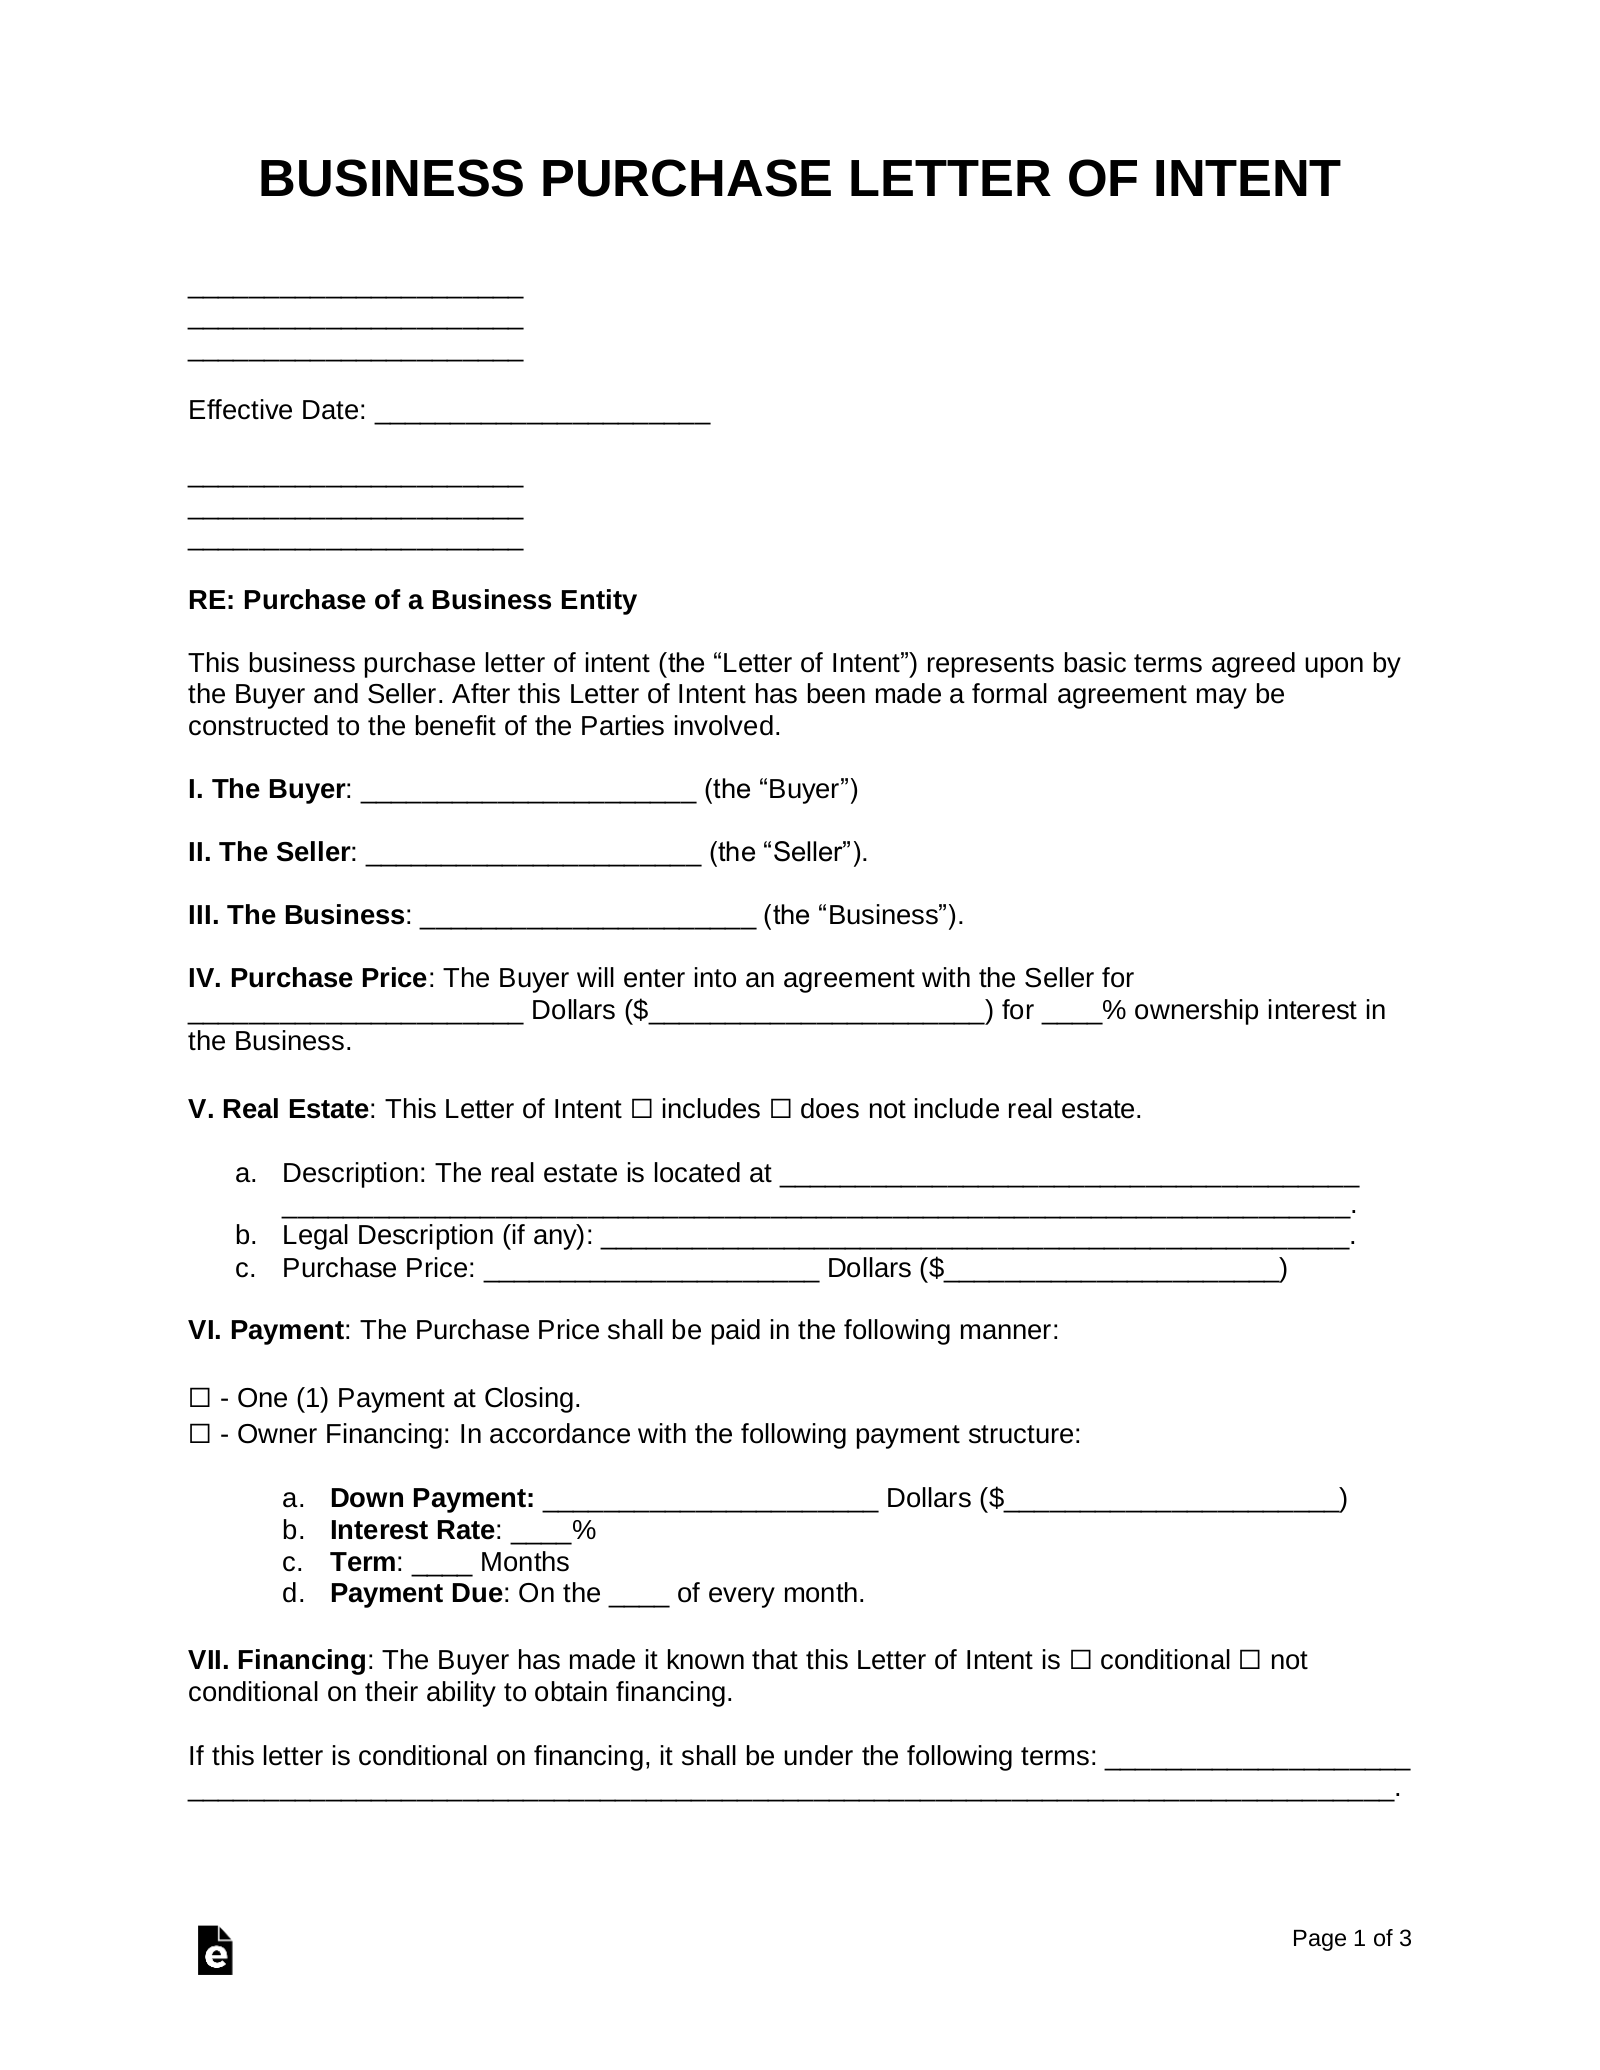 Free Business Purchase Letter Of Intent Template Pdf Word